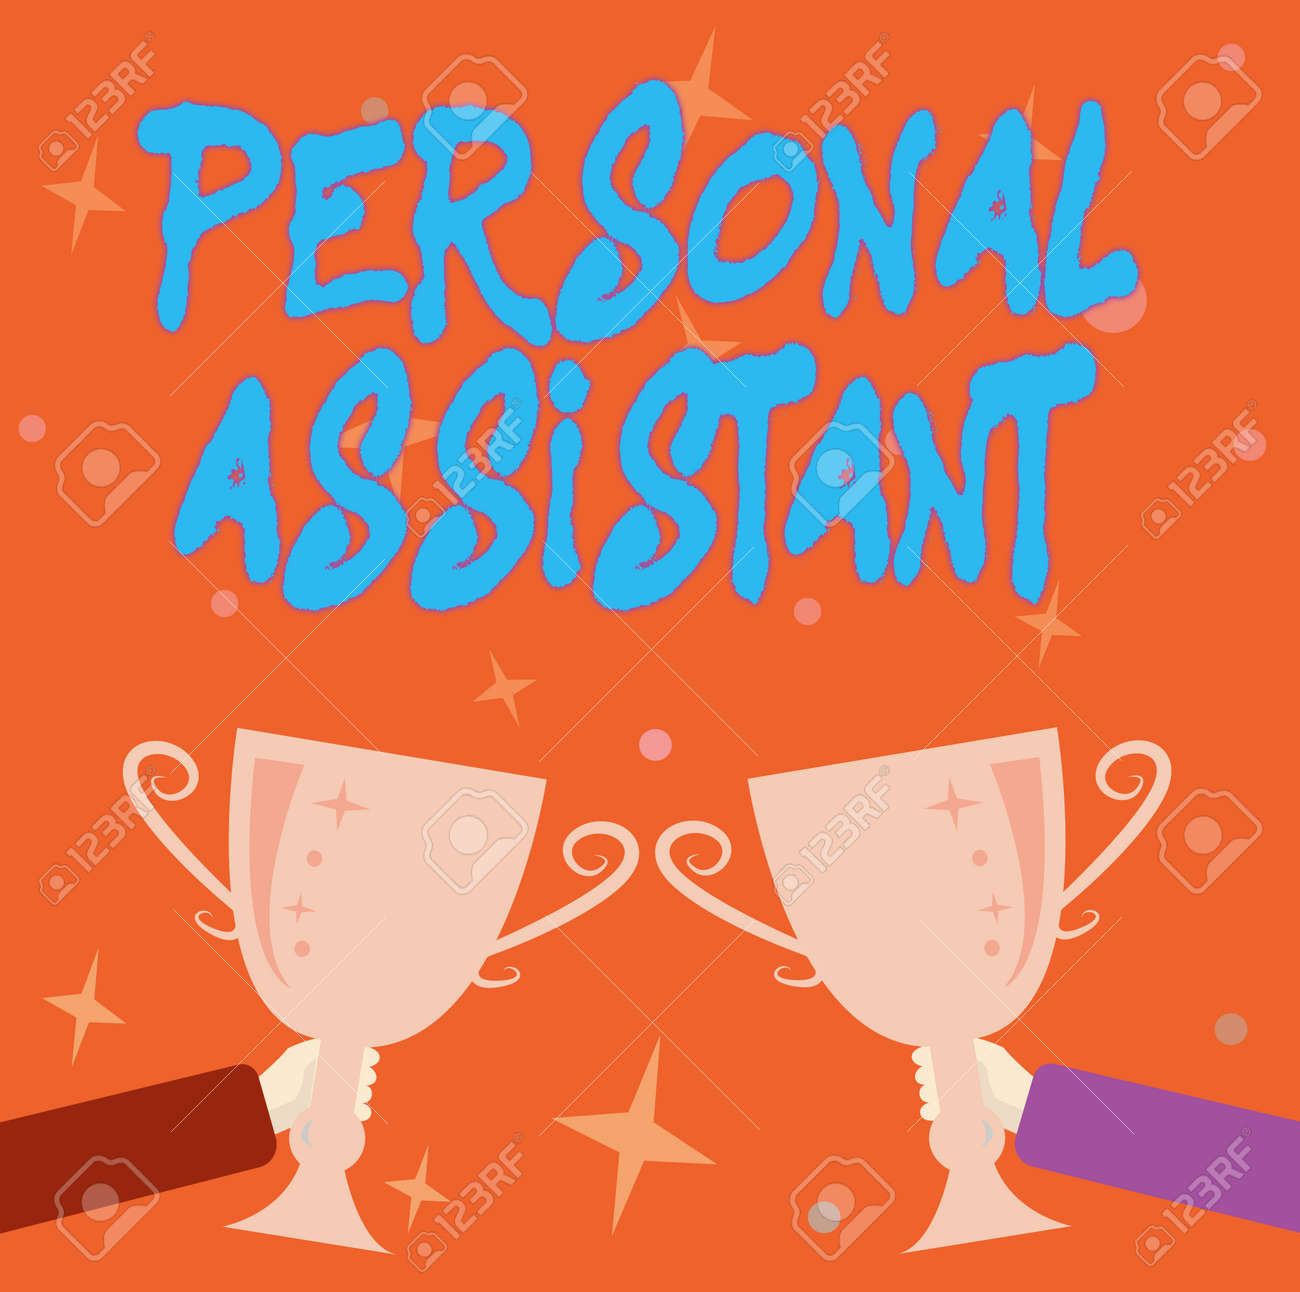 Text showing inspiration Personal Assistant. Business idea administrative assistant working exclusively for a person Abstract Victory Reward Ceremony, Celebrating New Winner Concept - 172085947